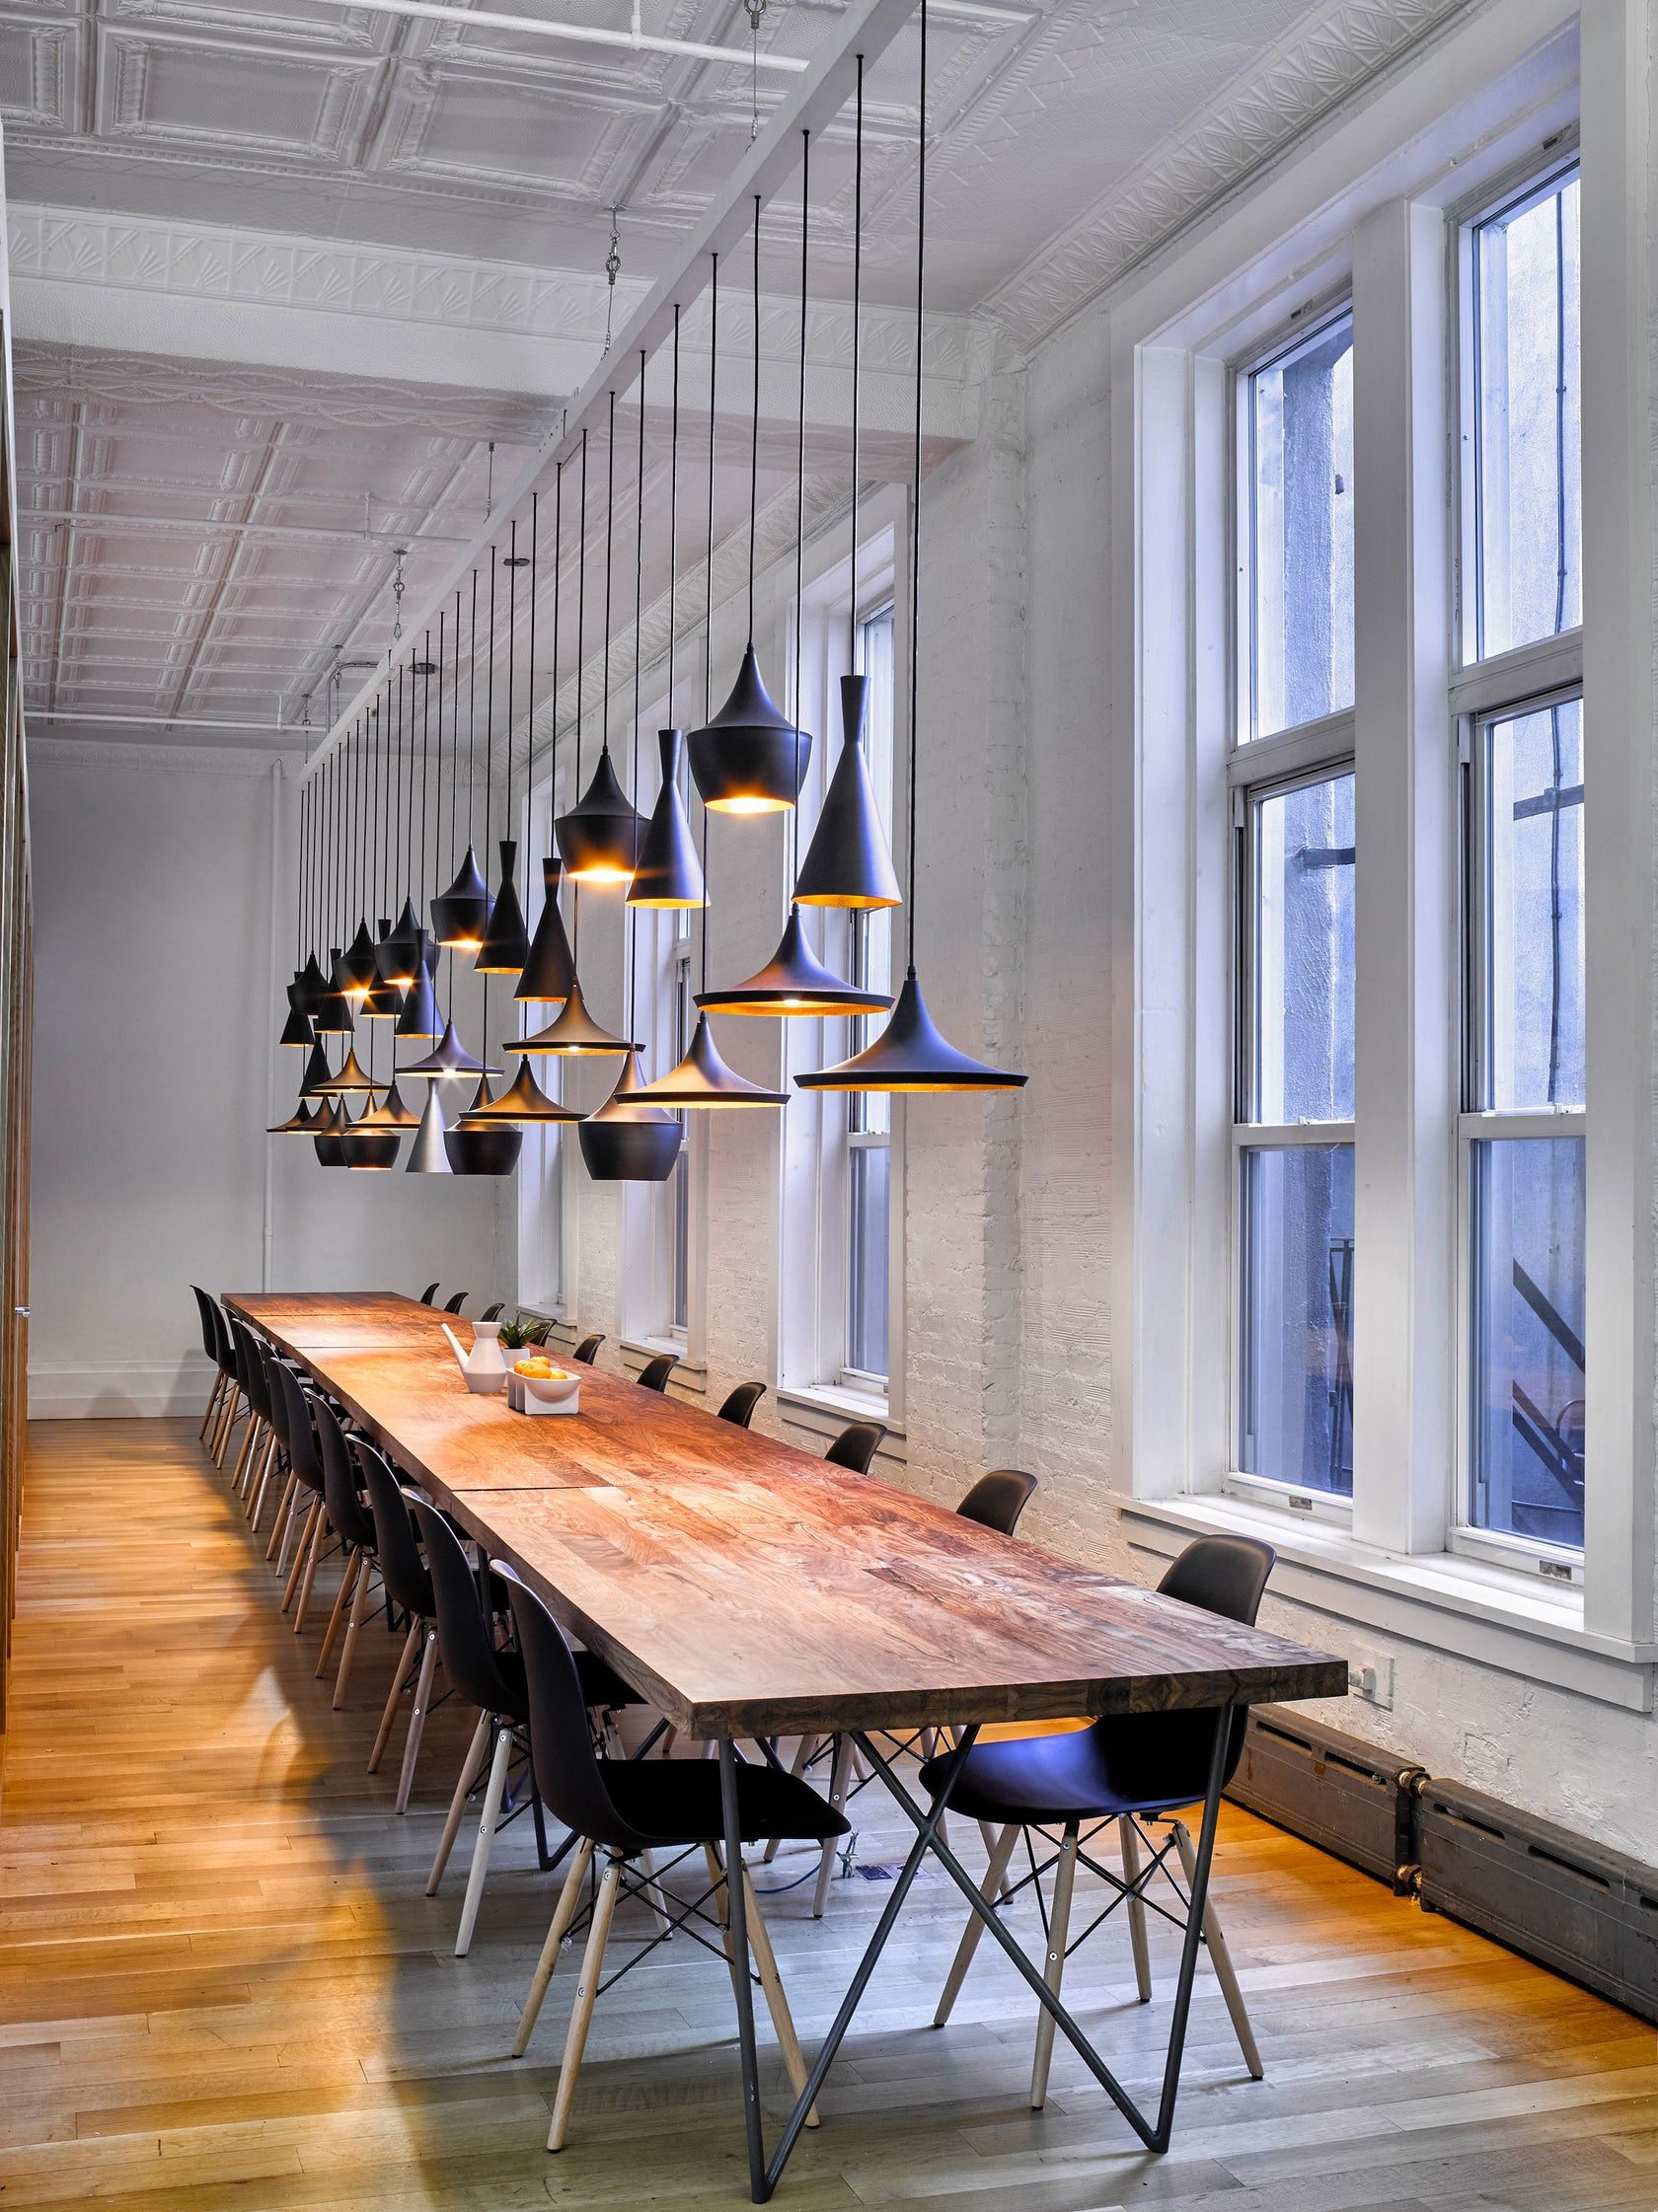 How to Specify: Pendant Lighting | Architecture | Pinterest ... for Smart Office Lighting  585ifm